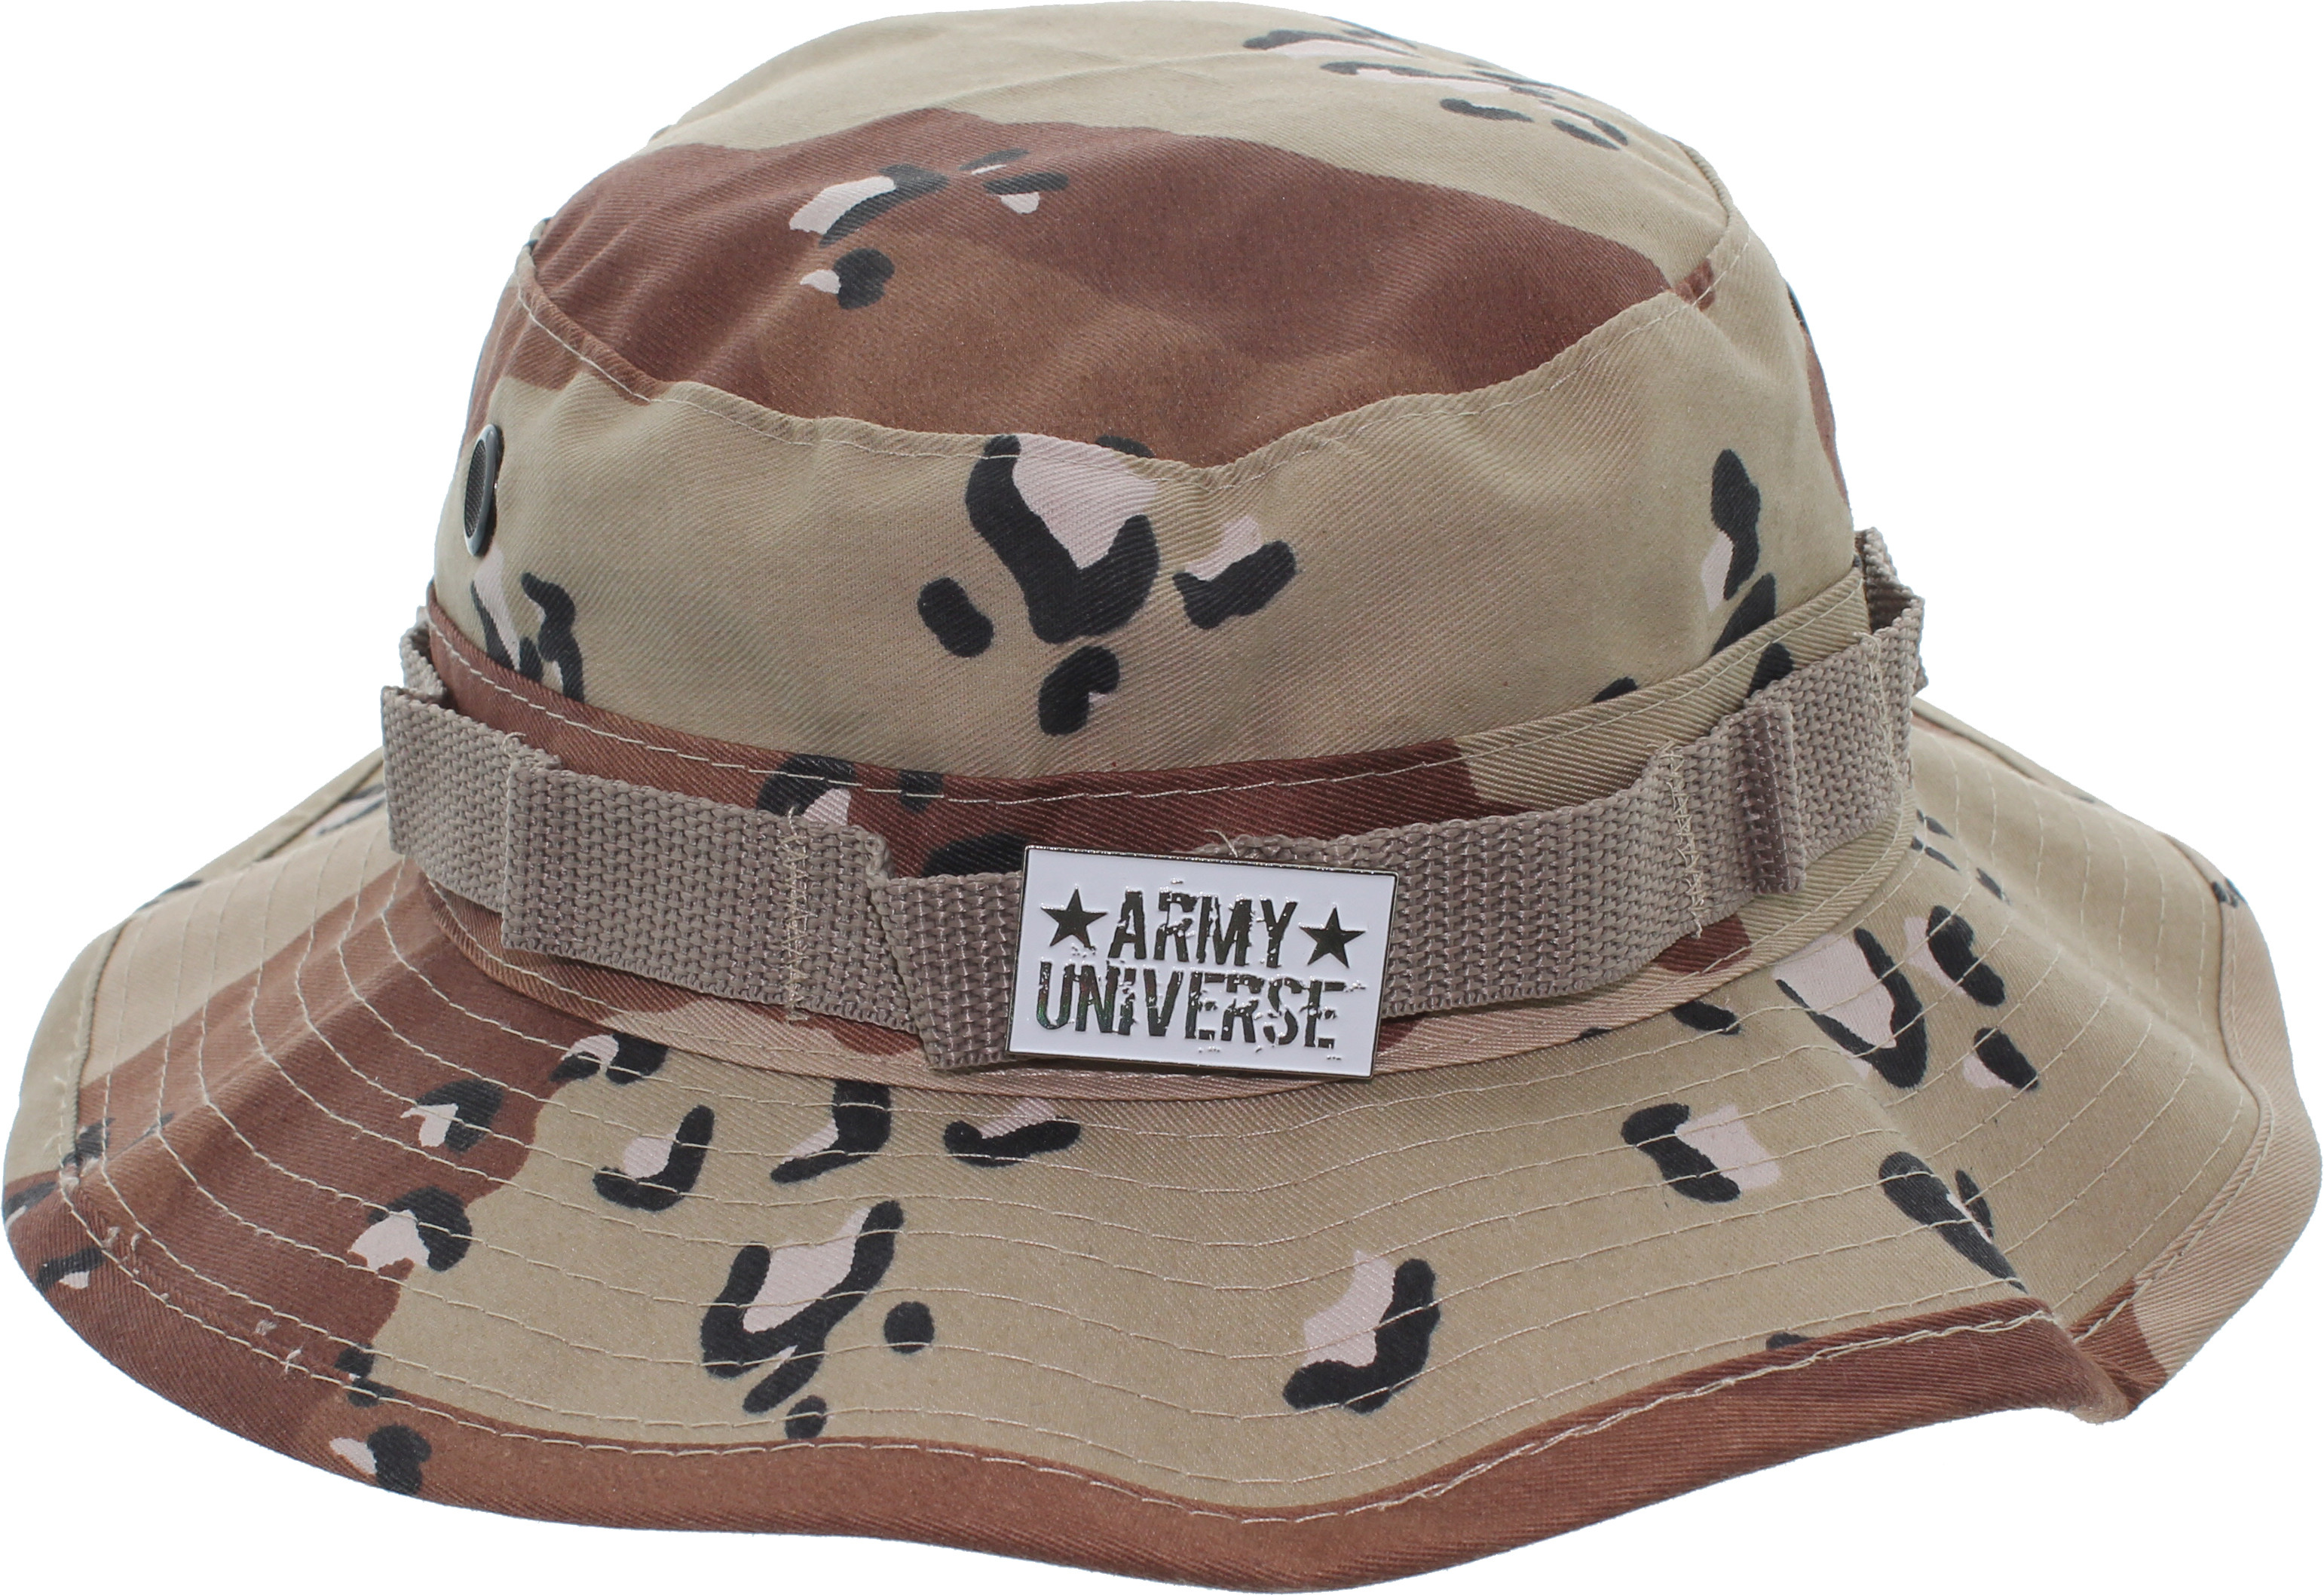 8e73bd63e8a ... Desert Camouflage Boonie Hat with ARMY UNIVERSE Pin  Desert Digital ...